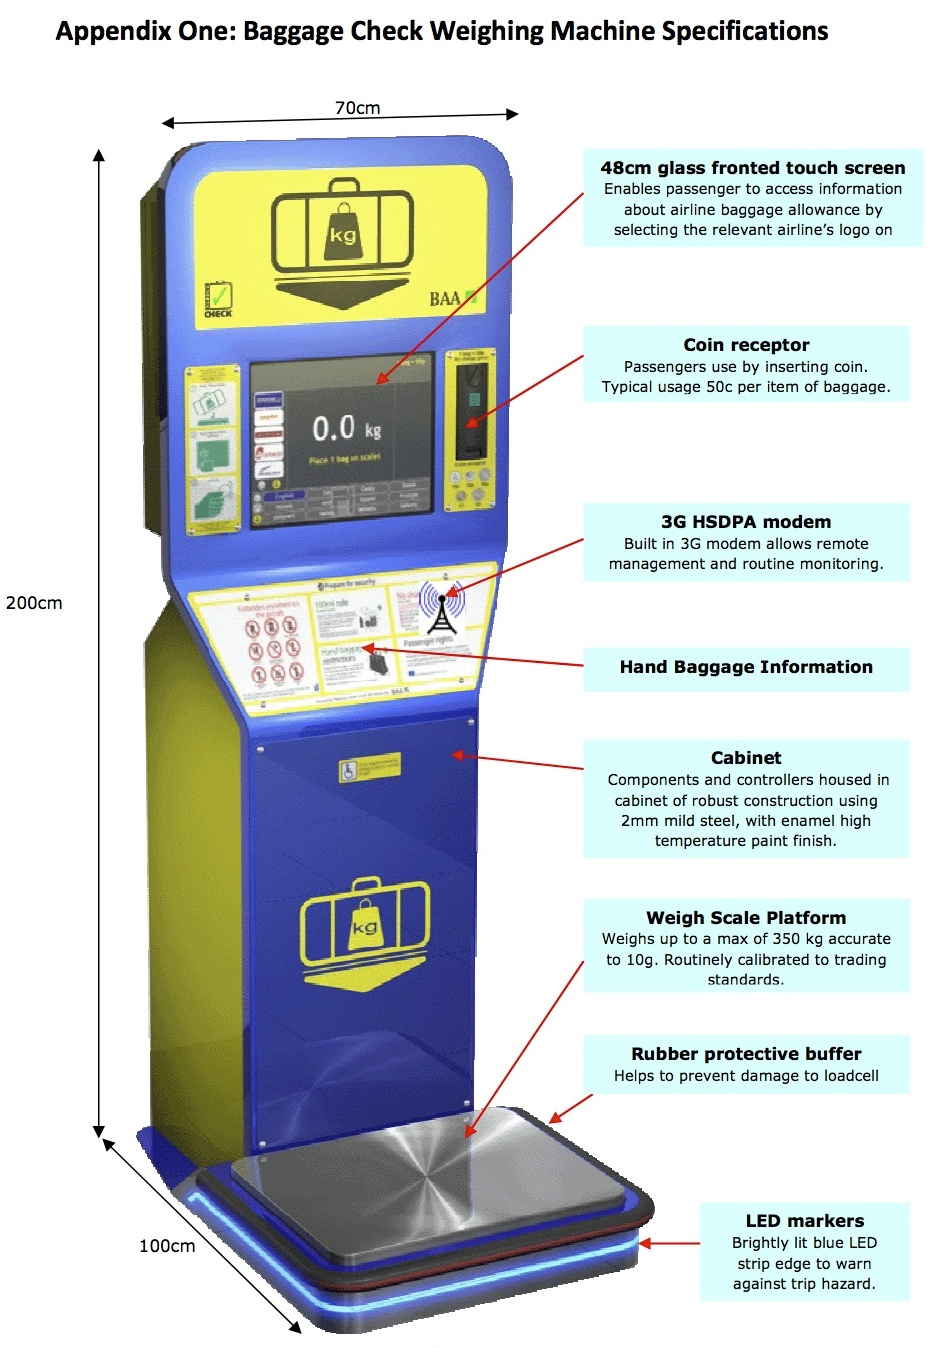 Baggage Check Weighing Machines For Airports Baggage